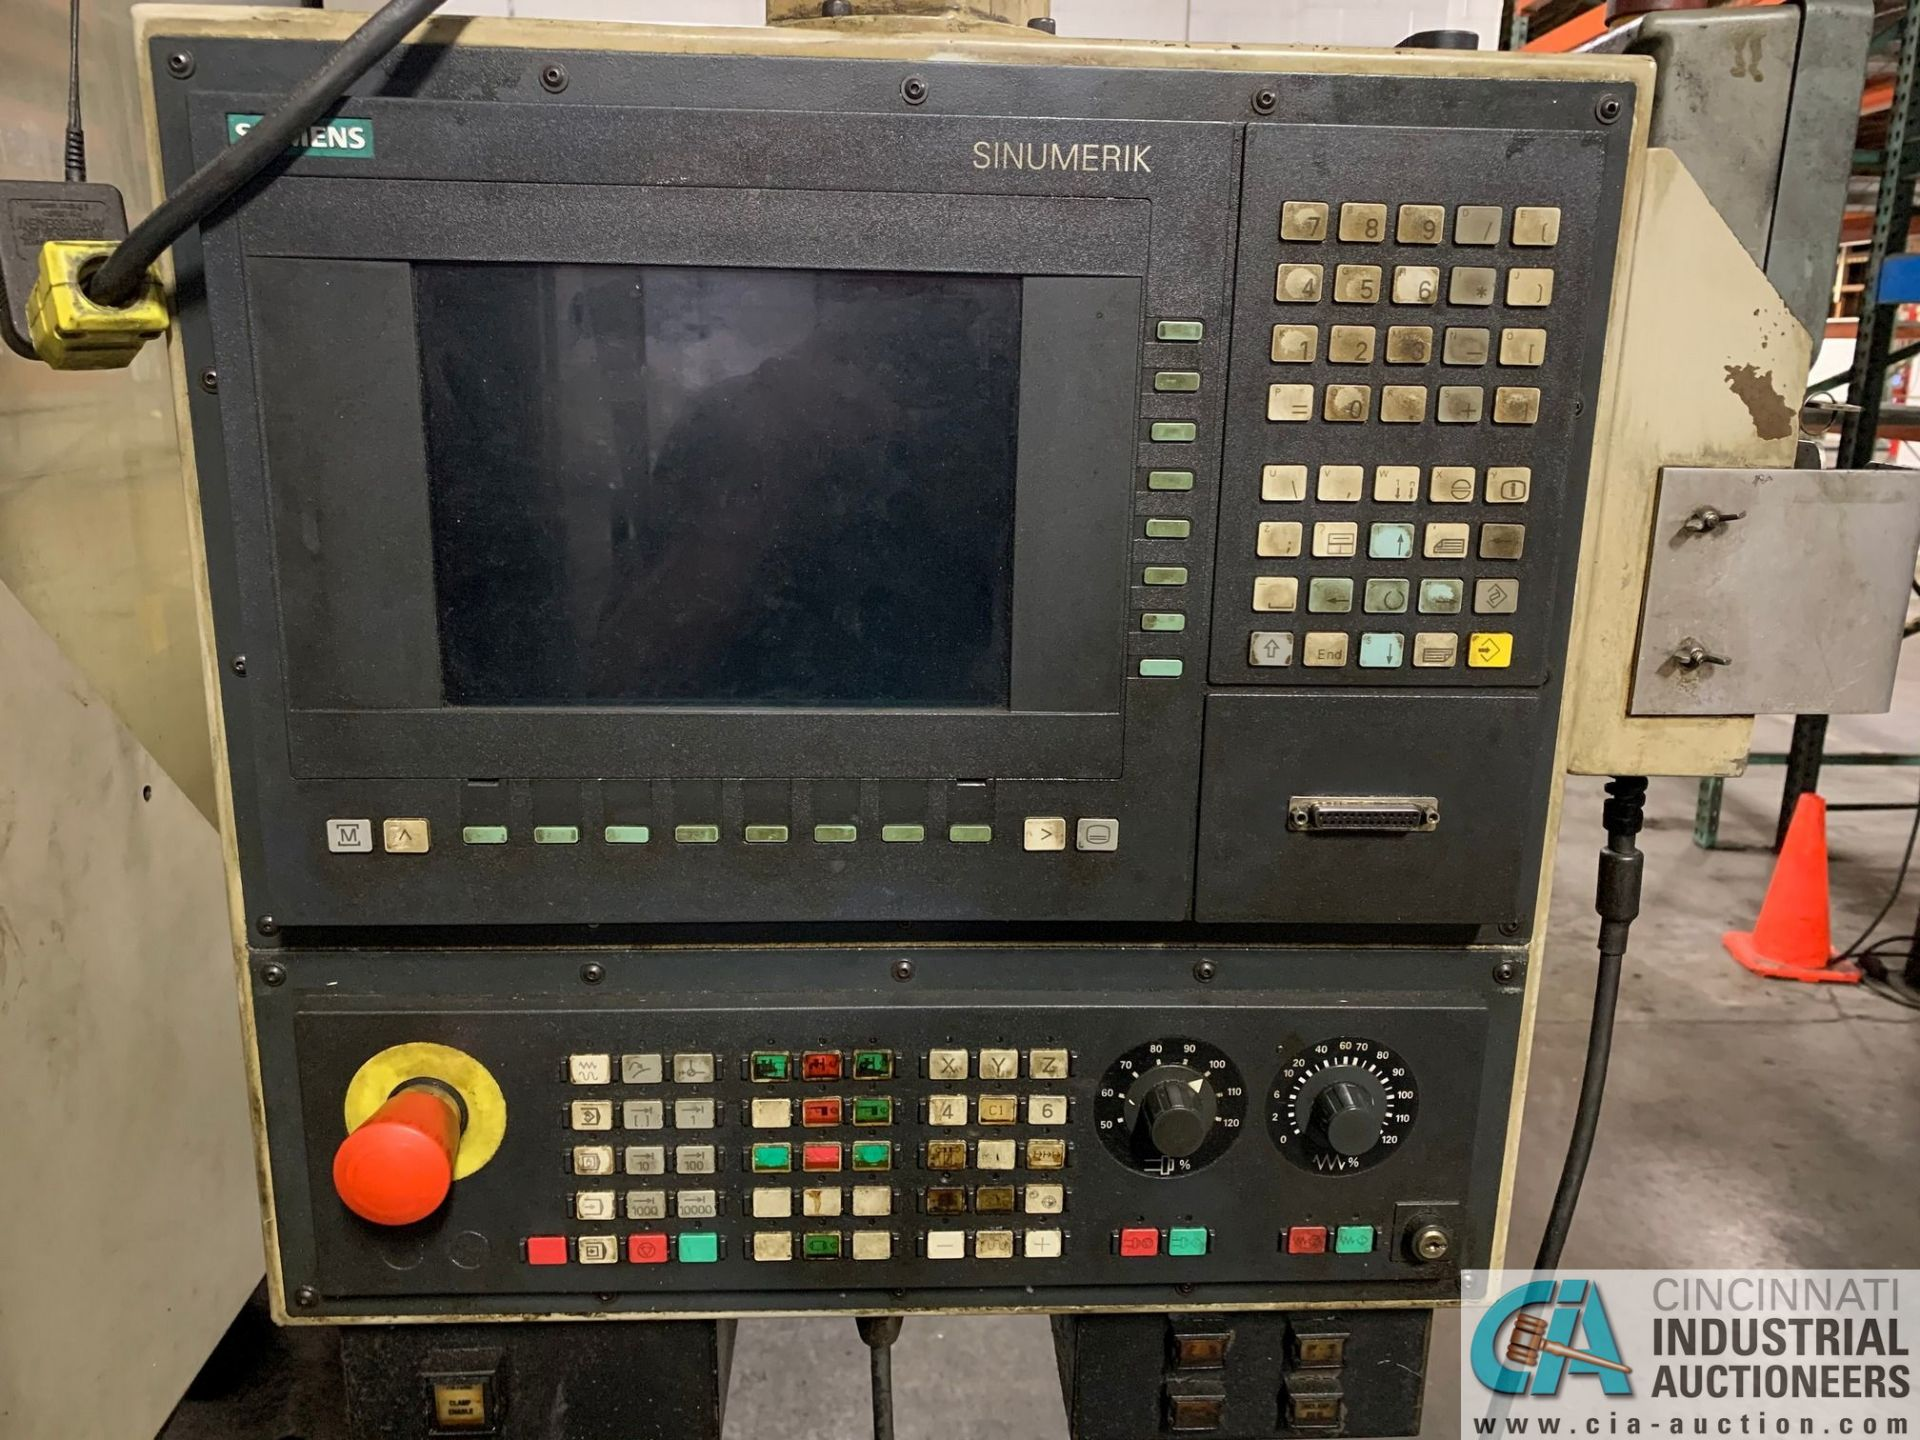 MONARCH UNISIGN TYPE UNIVERS 4 ZONALL 4 CNC VERTICAL MACHINING CENTER; S/N 99Z402, NO. 4292, - Image 4 of 11